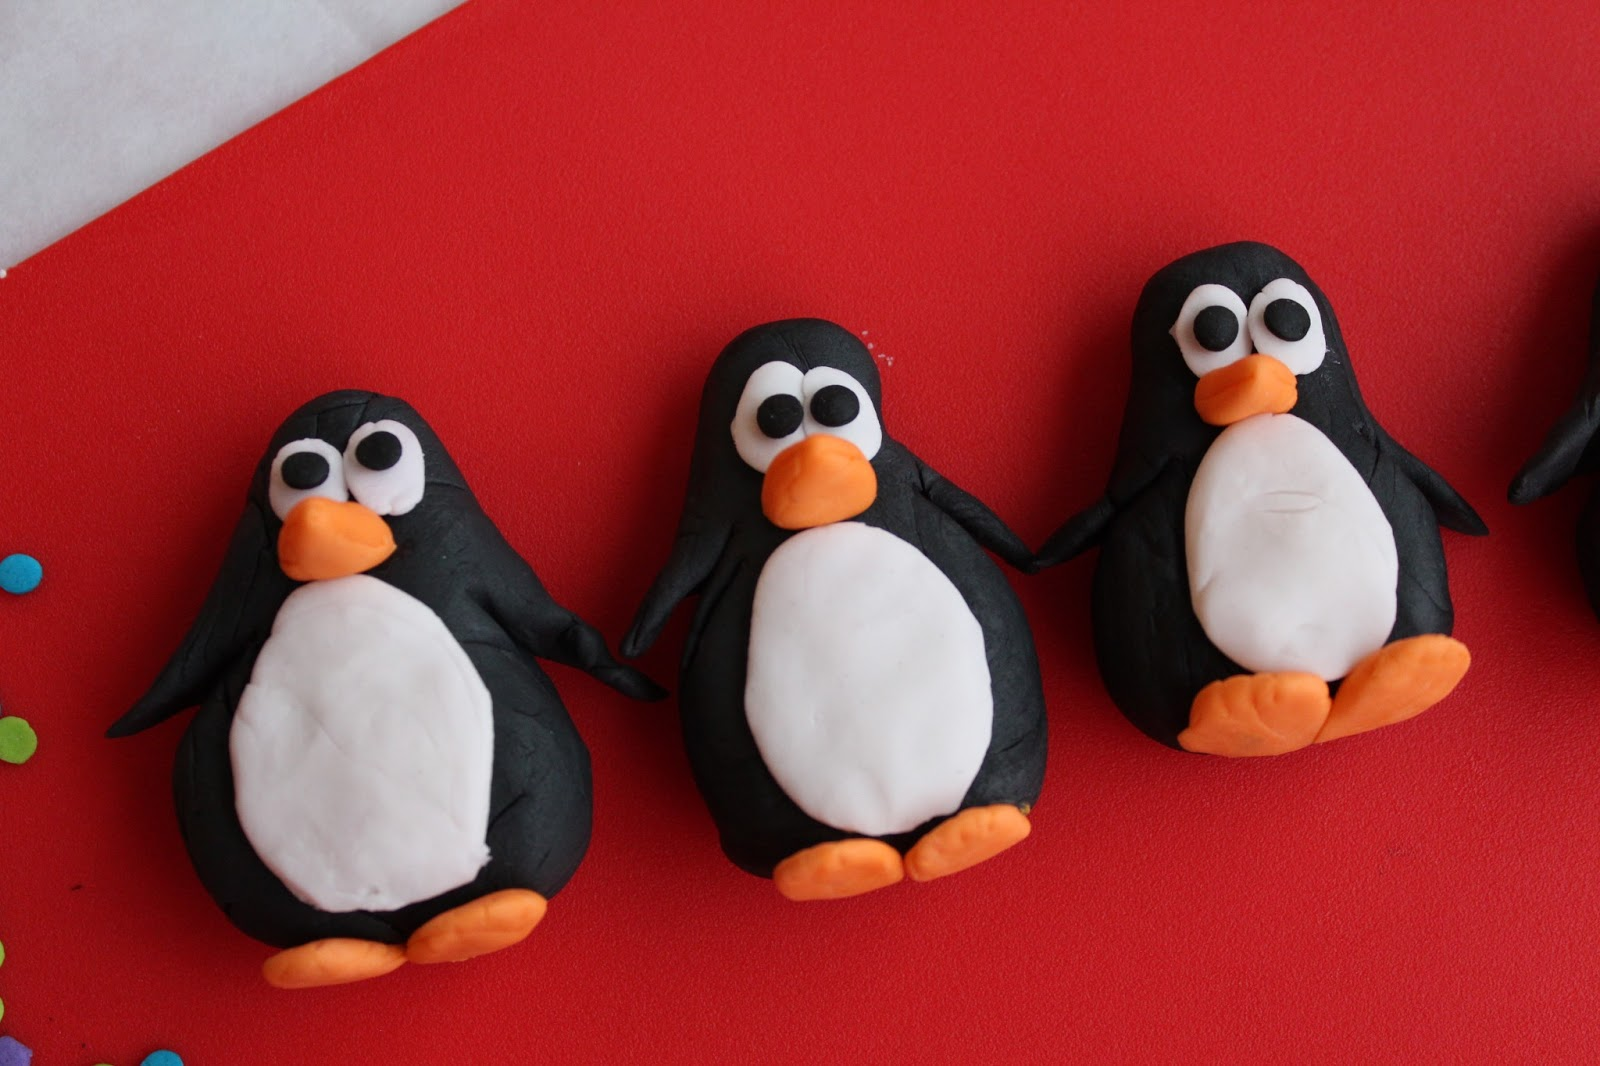 picture How to Make Sugar Paste Penguins